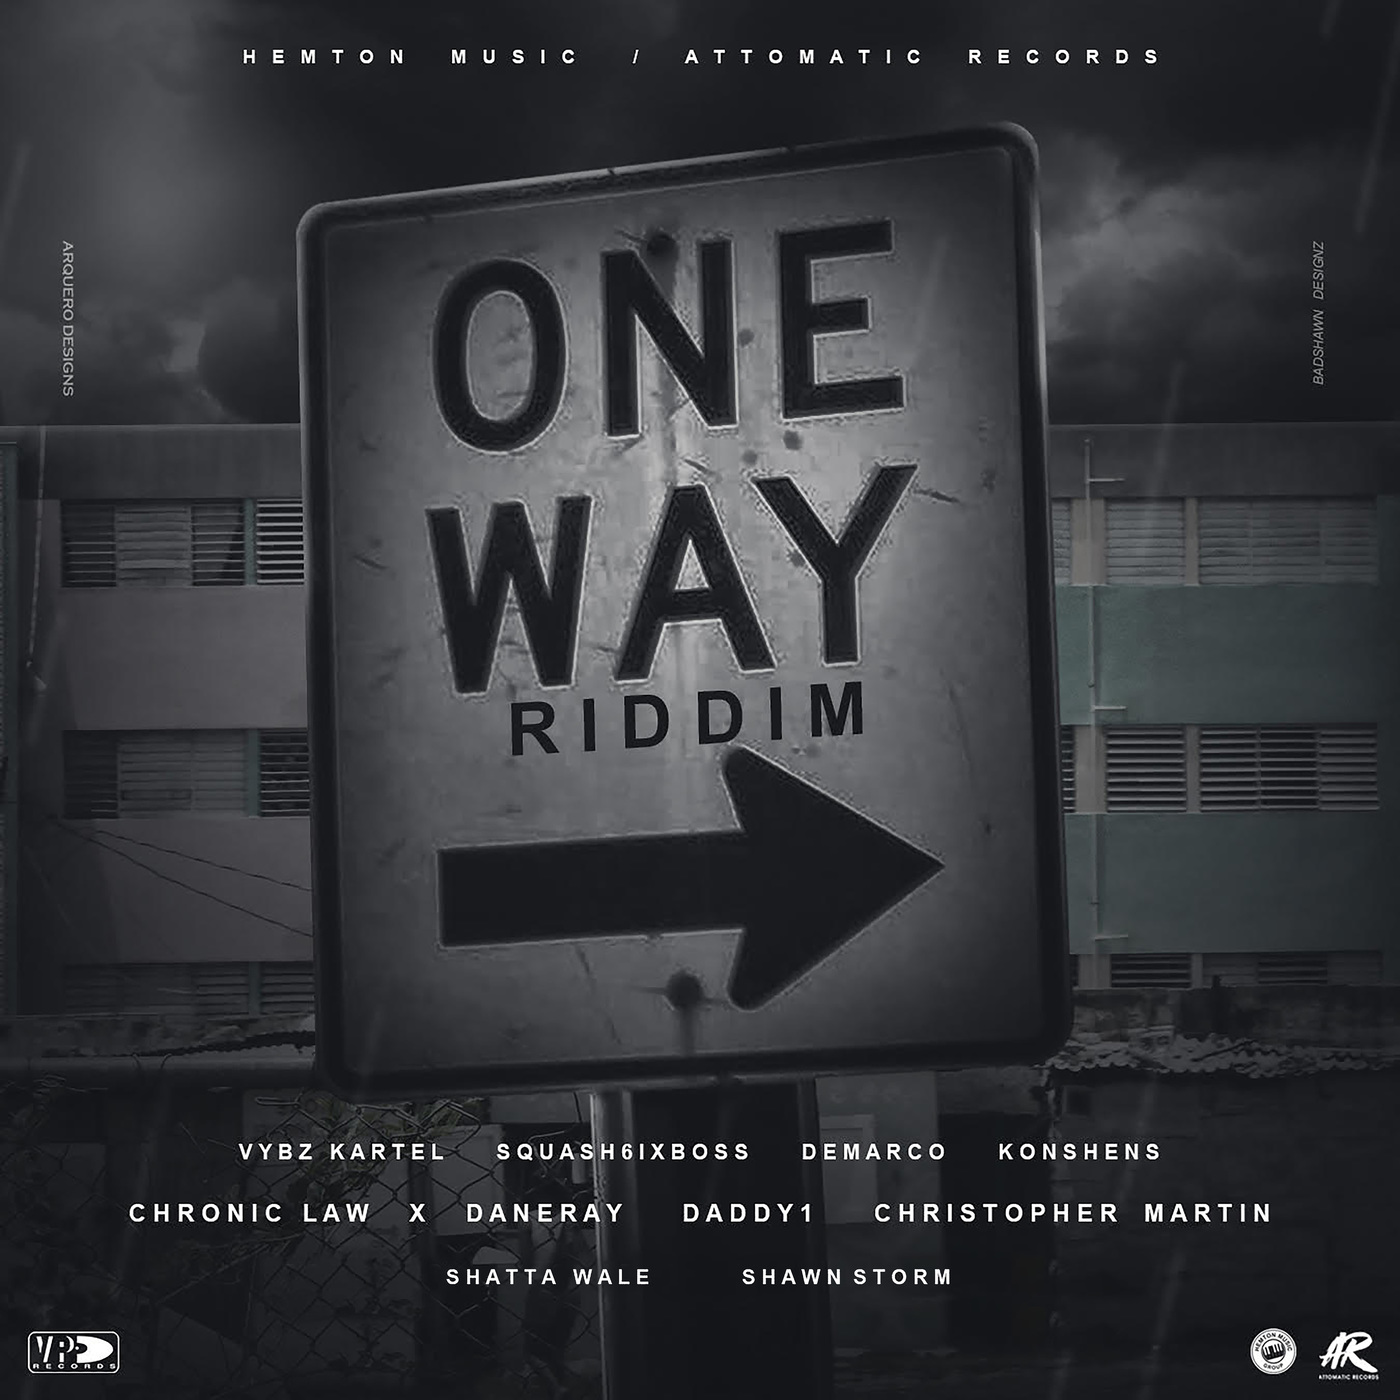 Shatta Wale - Vibration (One Way Riddim)Shatta Wale - Vibration (One Way Riddim)